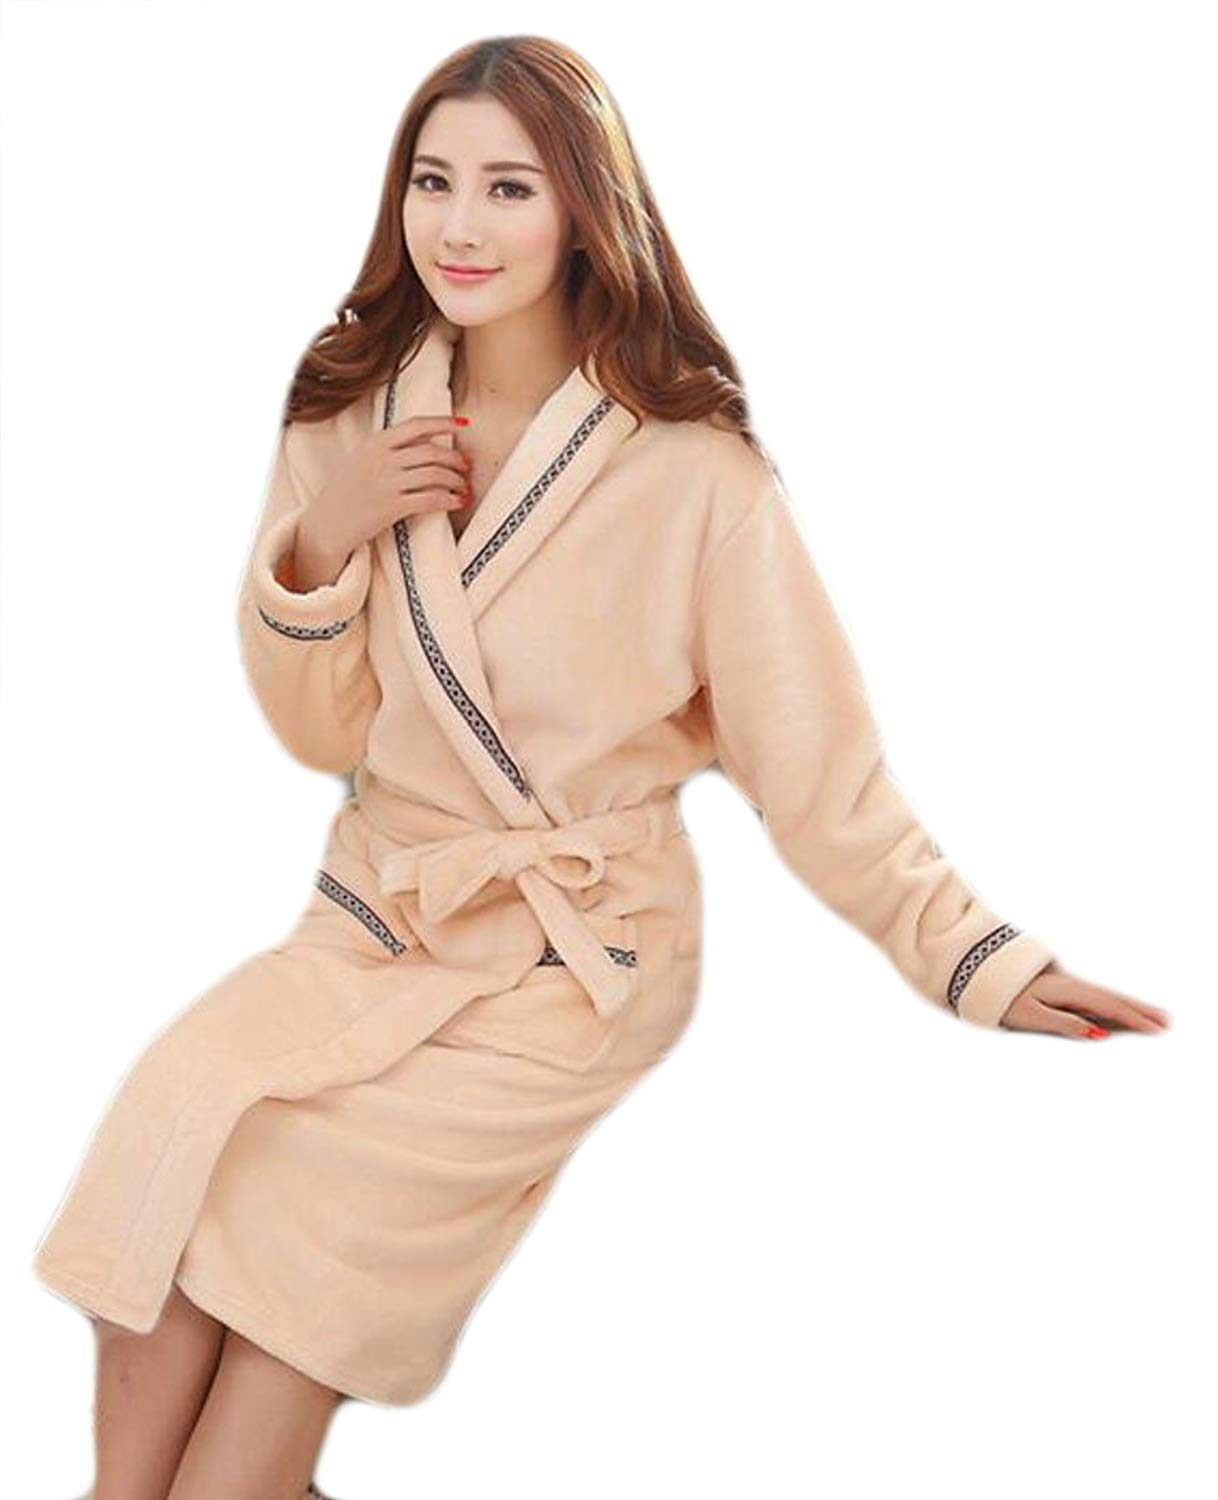 efd275ea2b Get Quotations · Jmwss QD Womens Velvet Bathrobe Soft Warm Spa Robes  Loungewear